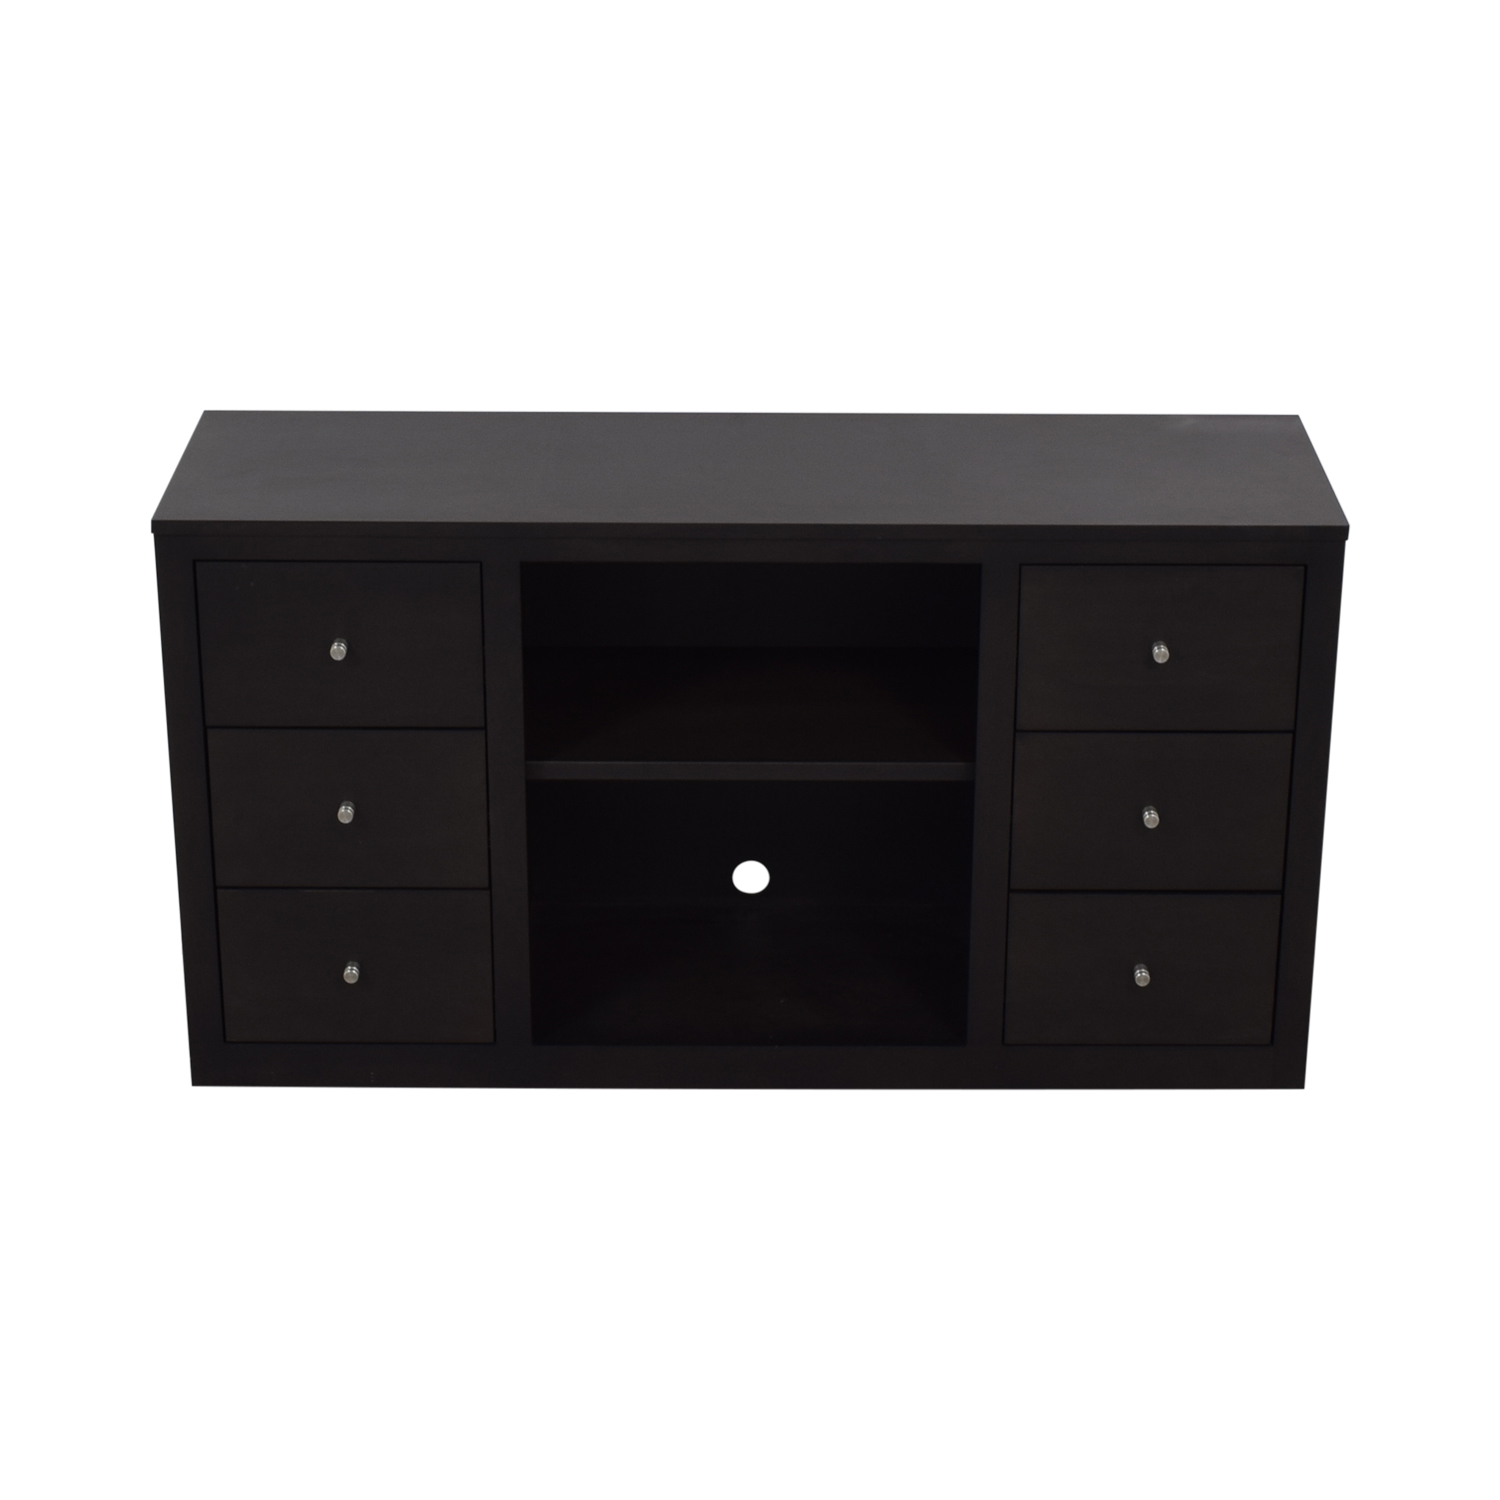 Room & Board Room & Board Woodwind Maple With Charcoal Stain Media Cabinet second hand